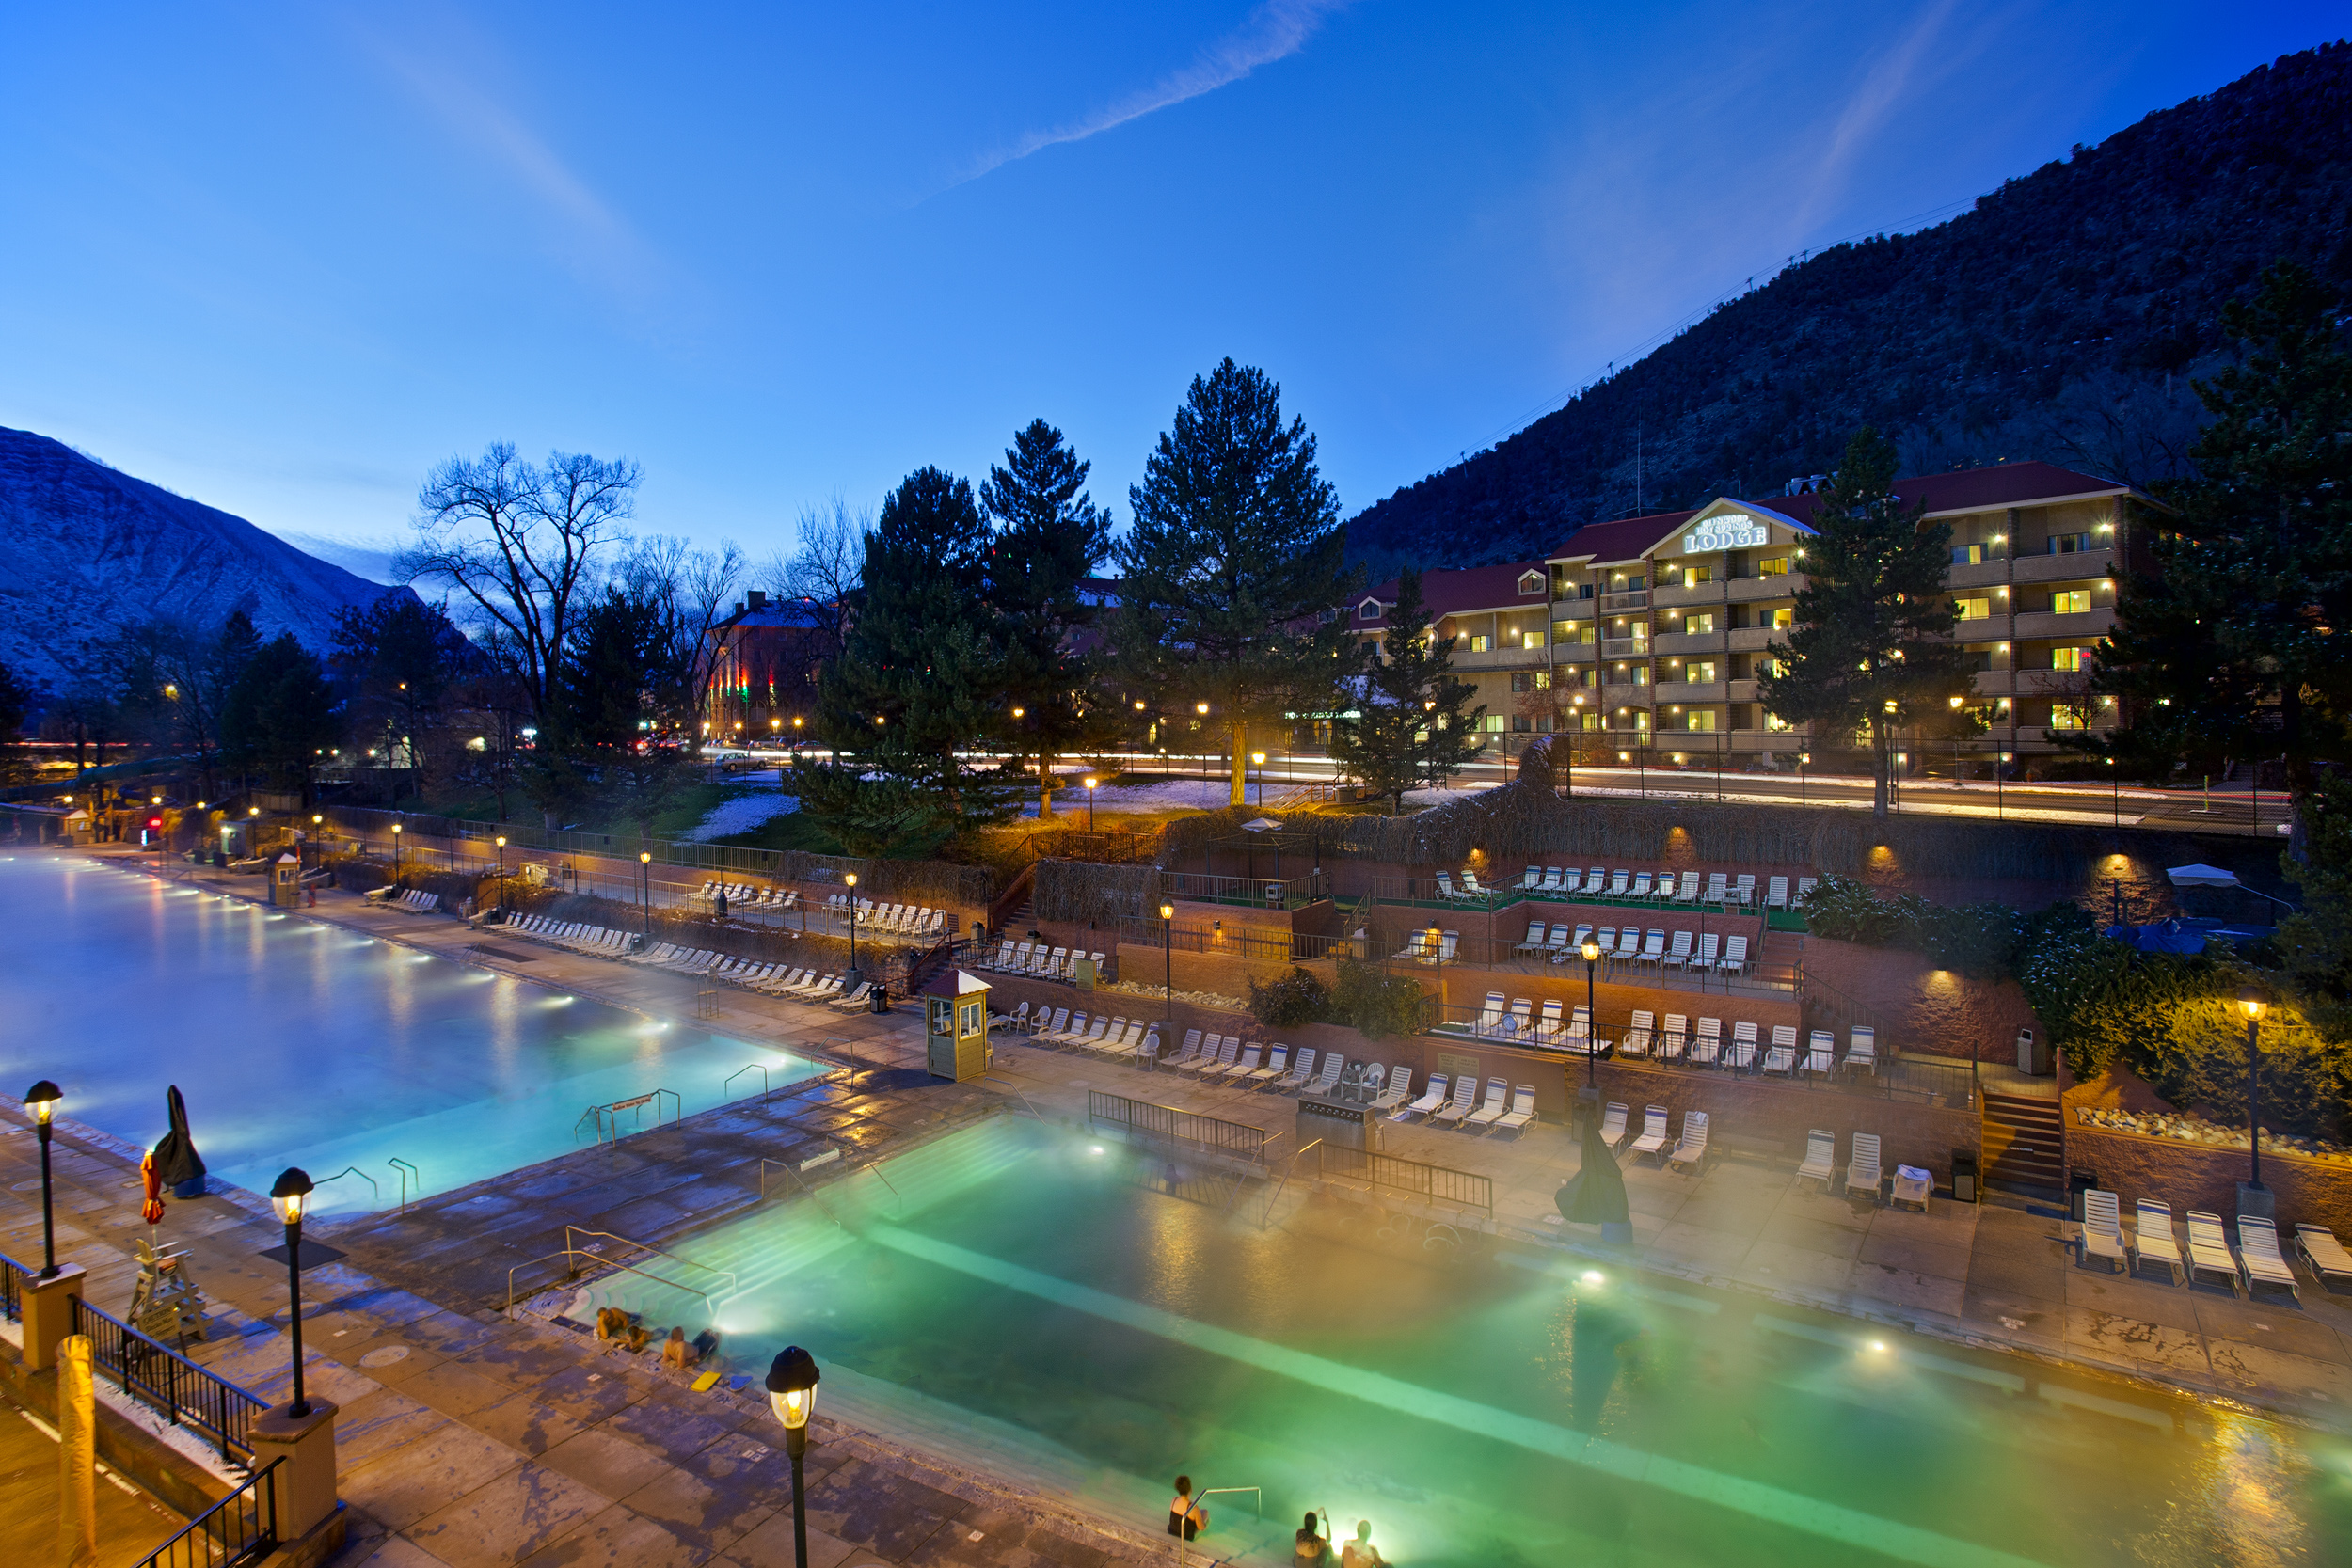 Glenwood Hot Springs In The Evening